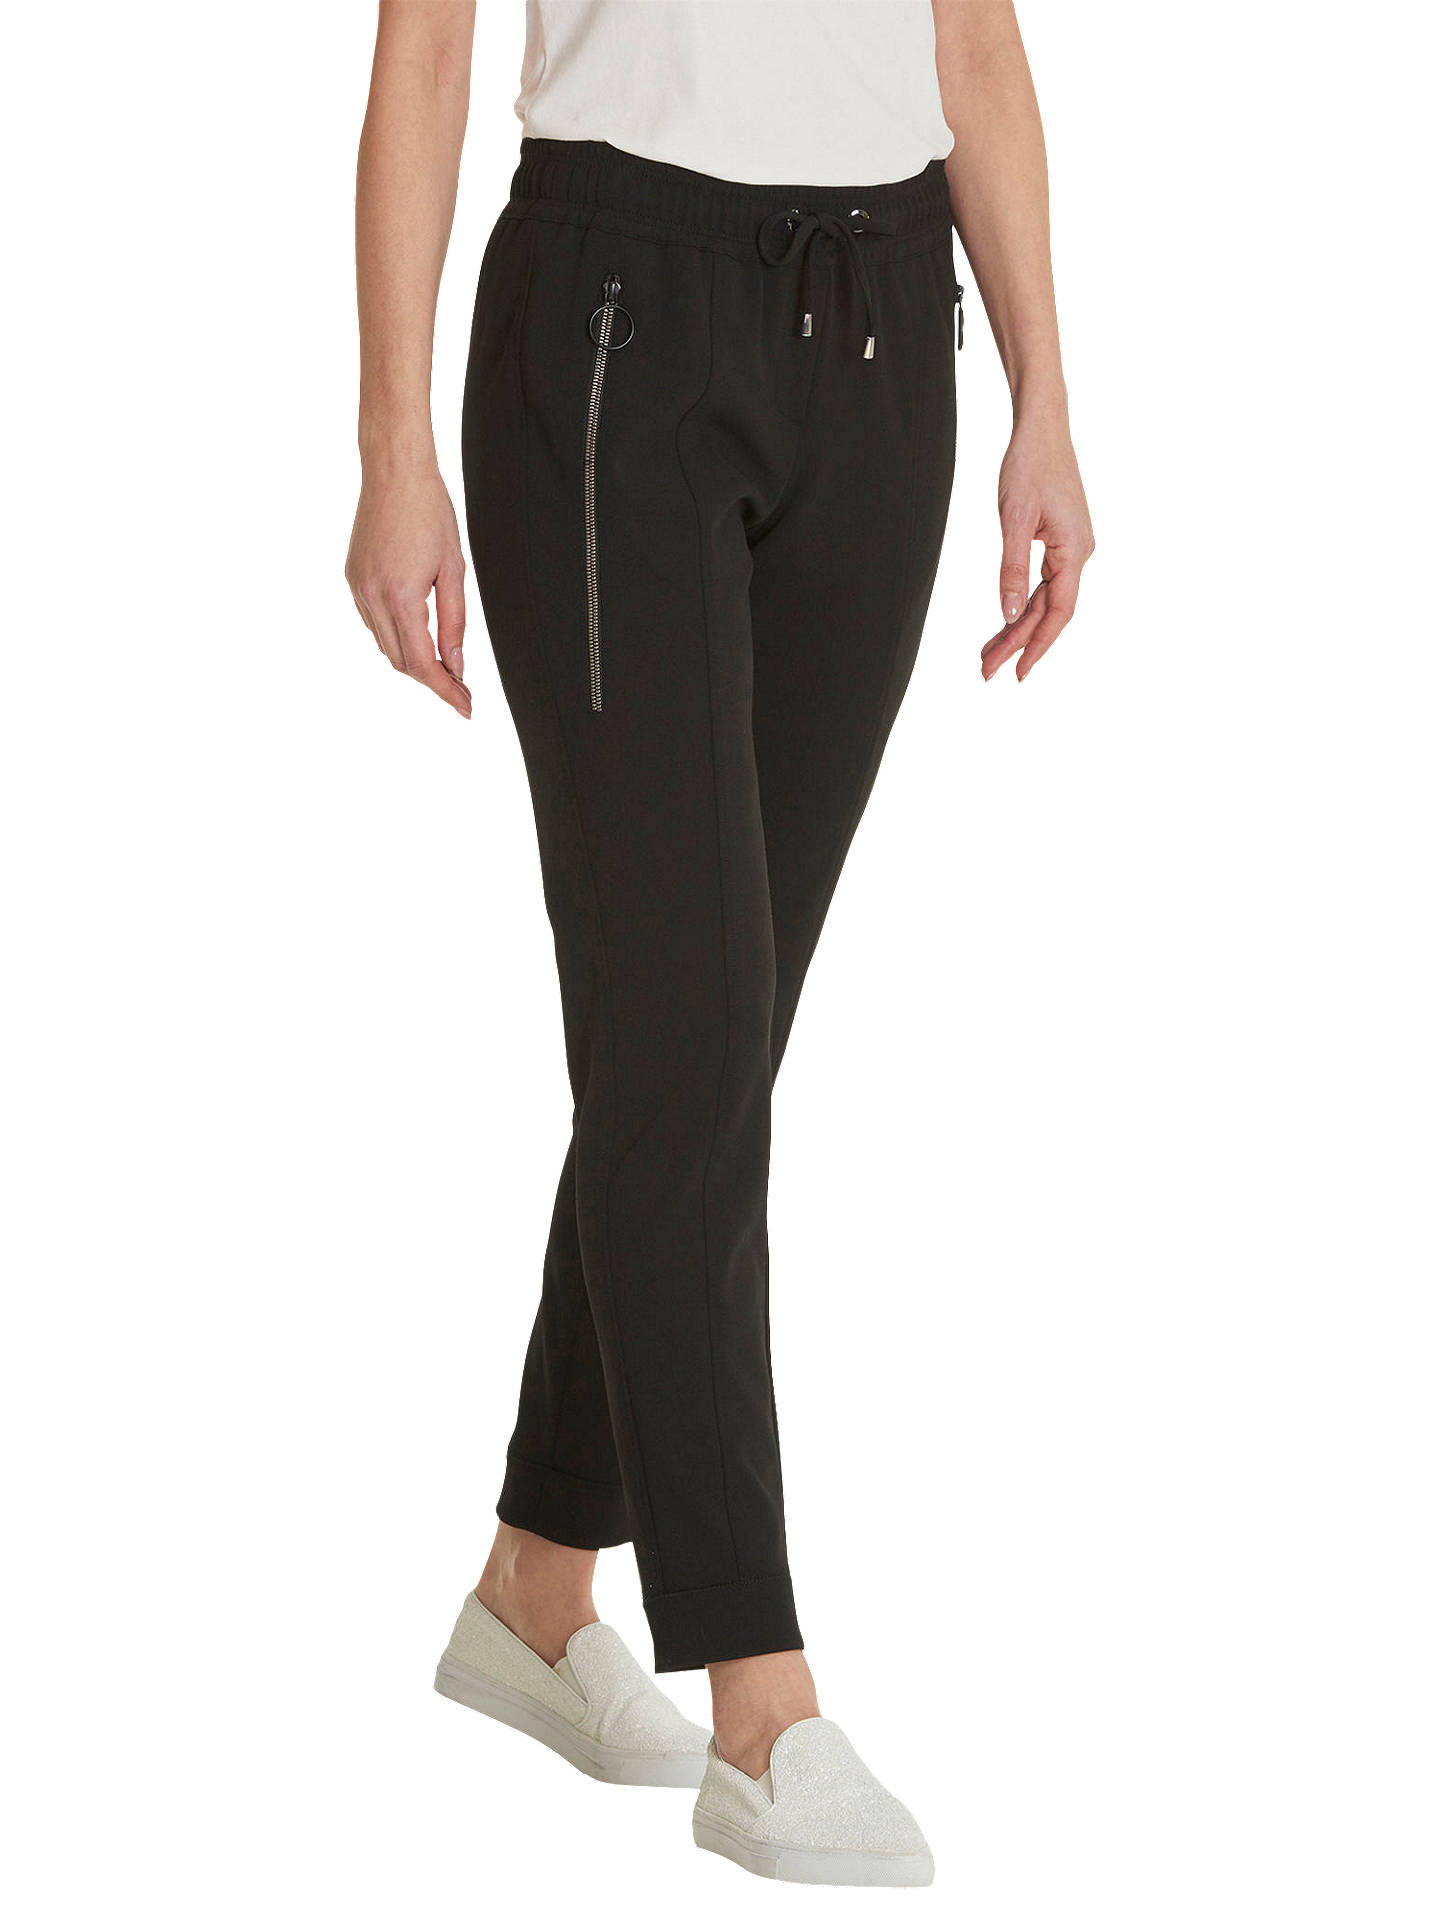 BuyBetty Barclay Pull-On Crepe Trousers, Black, 16 Online at johnlewis.com